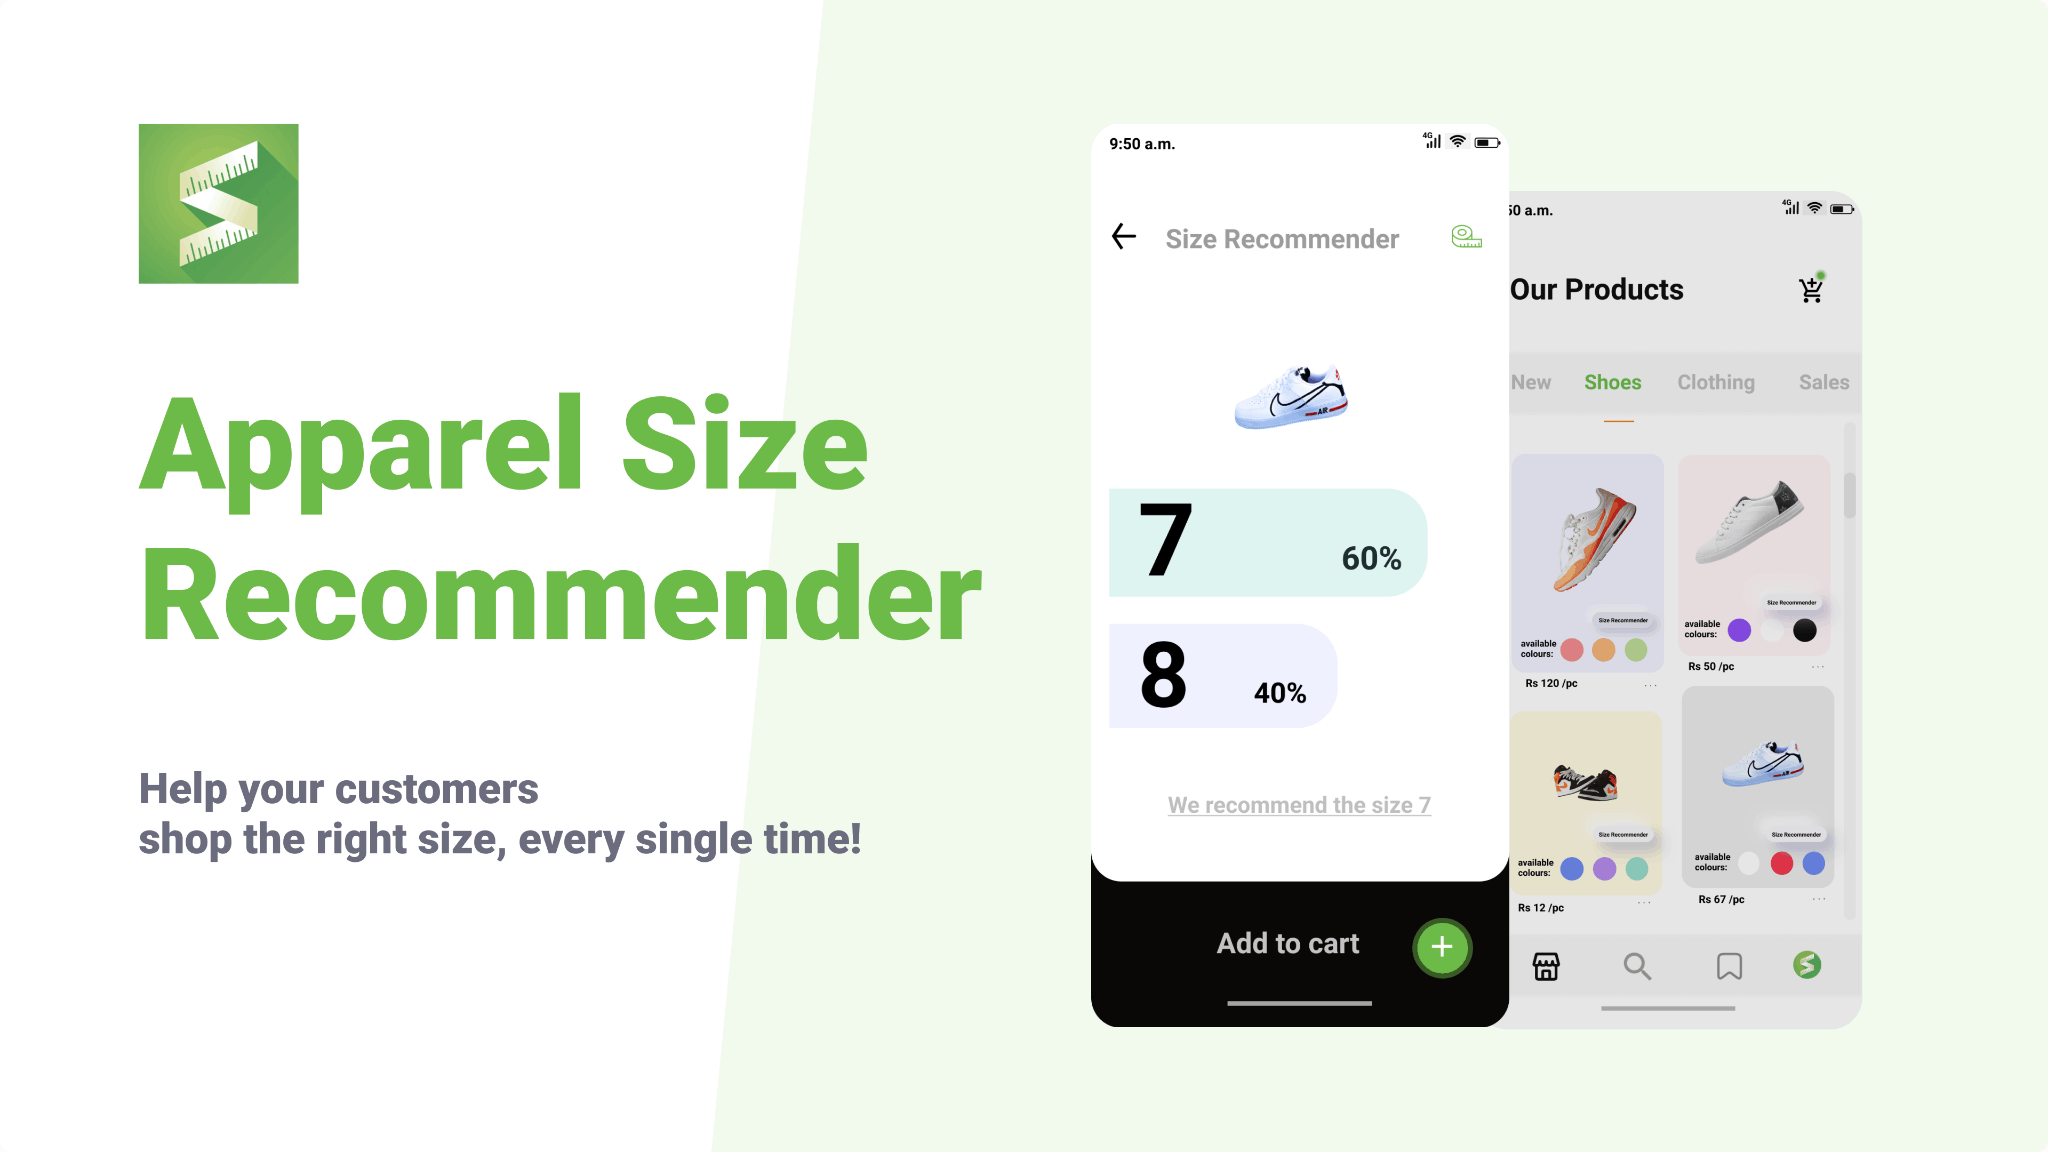 Size recommender